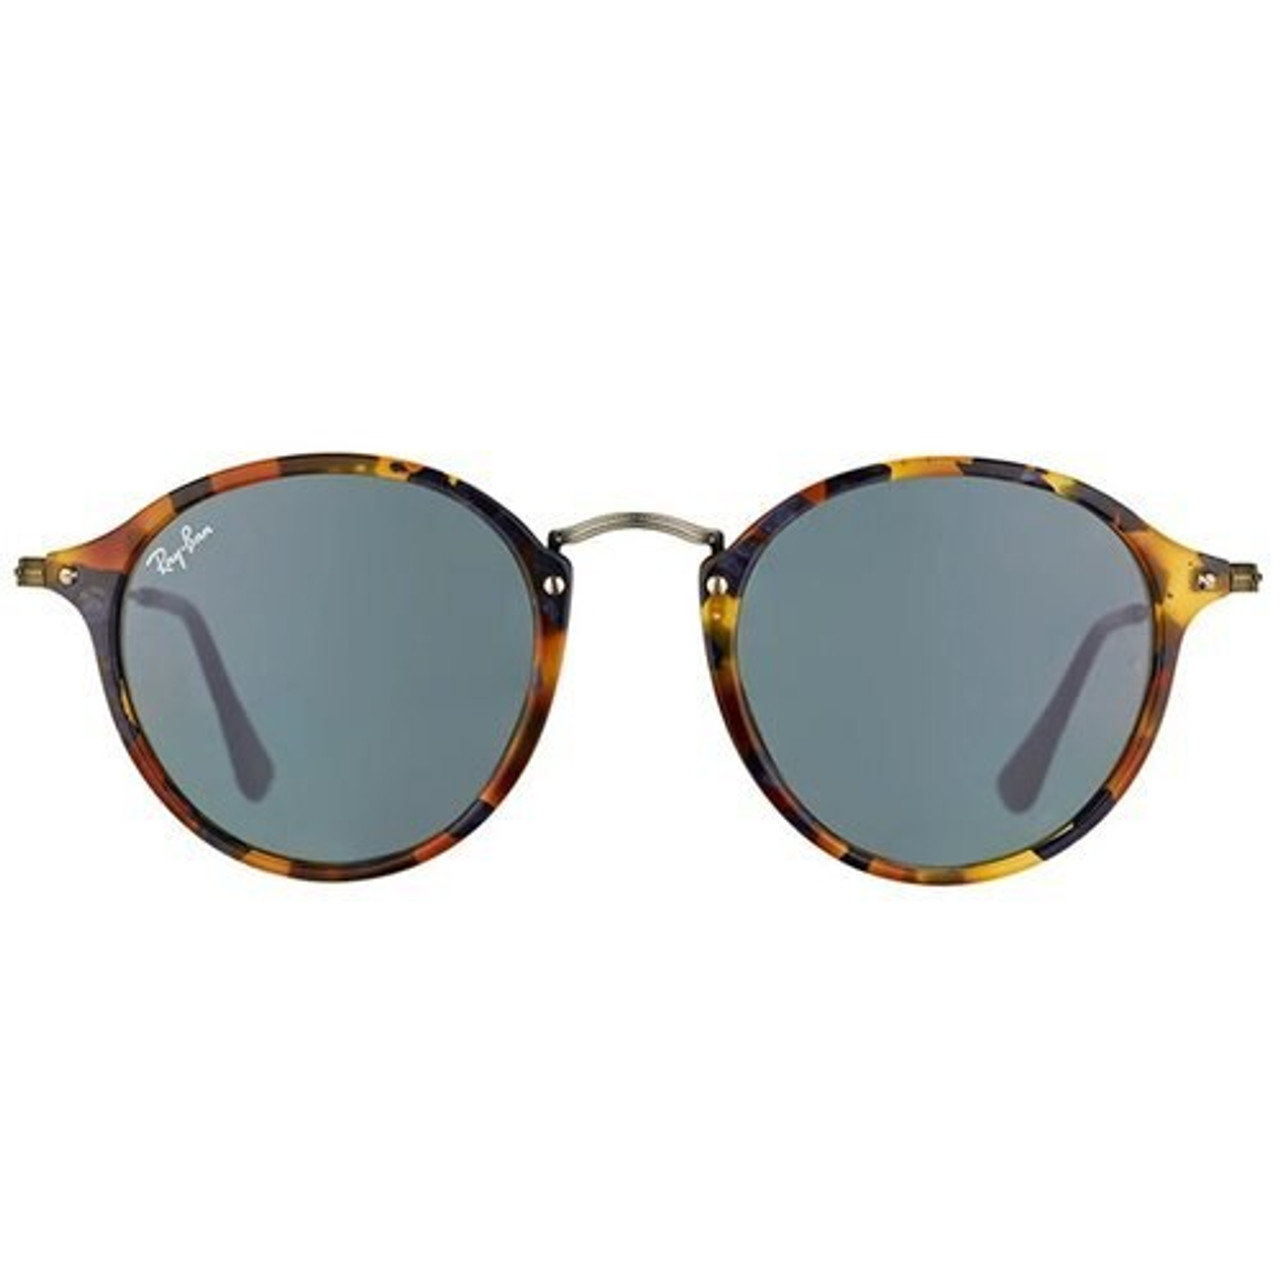 Ray-Ban Round Fleck Sunglasses In Spotted Blue Tortoise Classic - CHROME 9d9234eedc8df